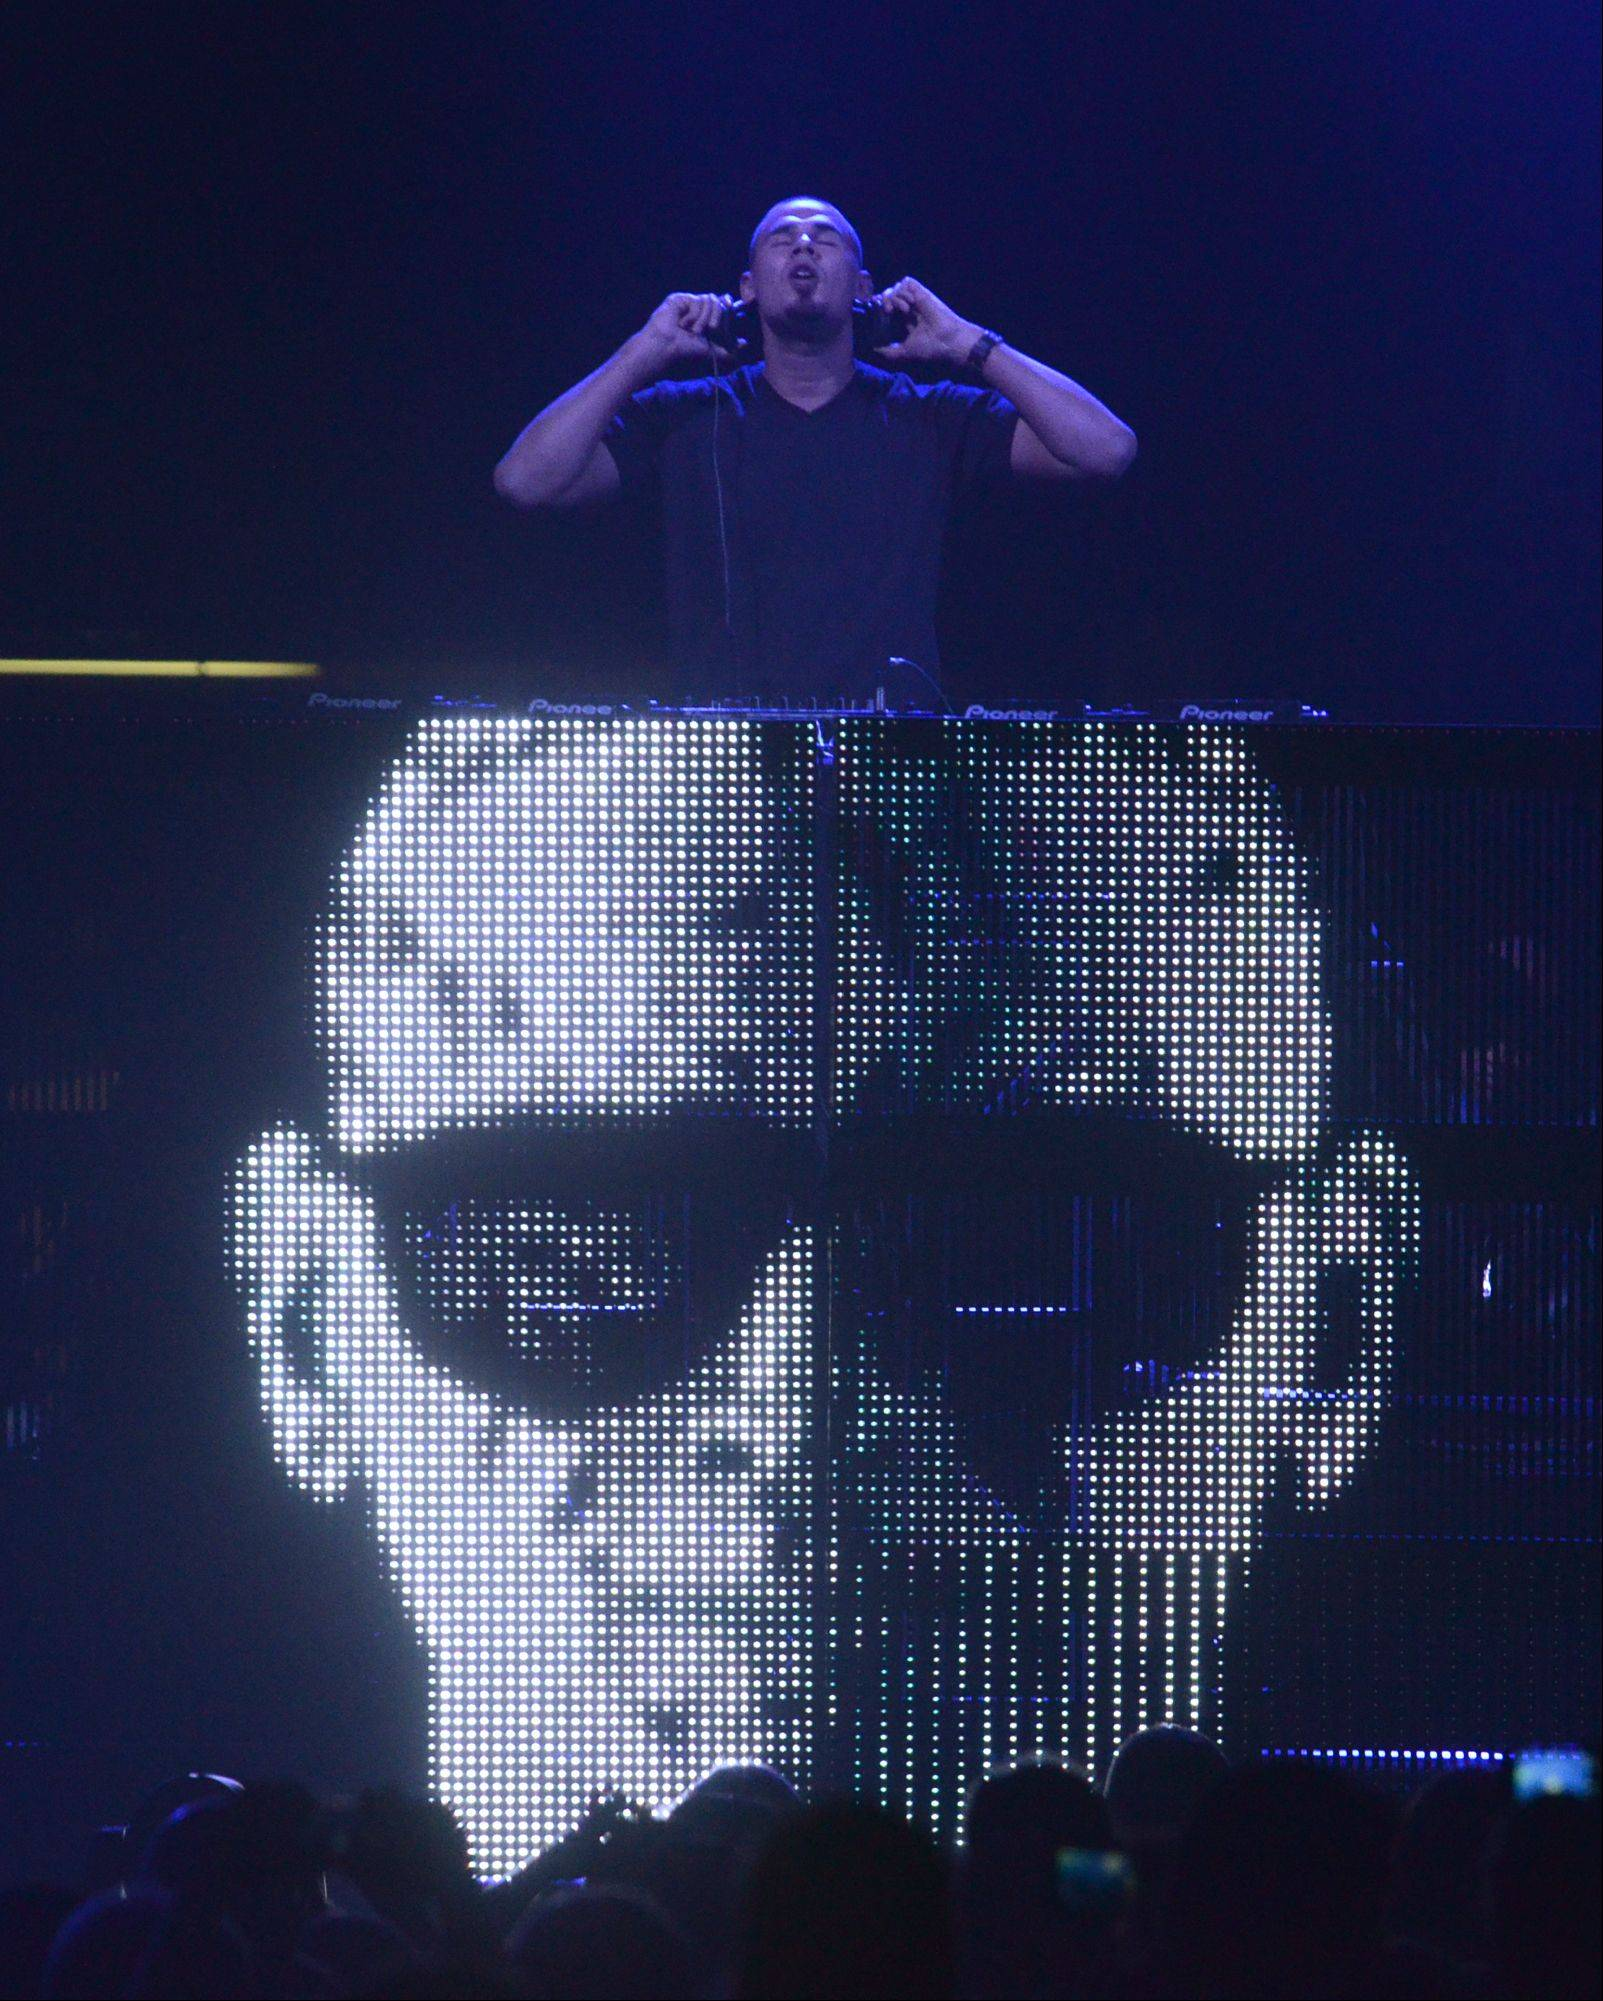 Afrojack performs during the Jingle Bash concert at the Allstate Arena in Rosemont on Saturday, December 15th, 2012.